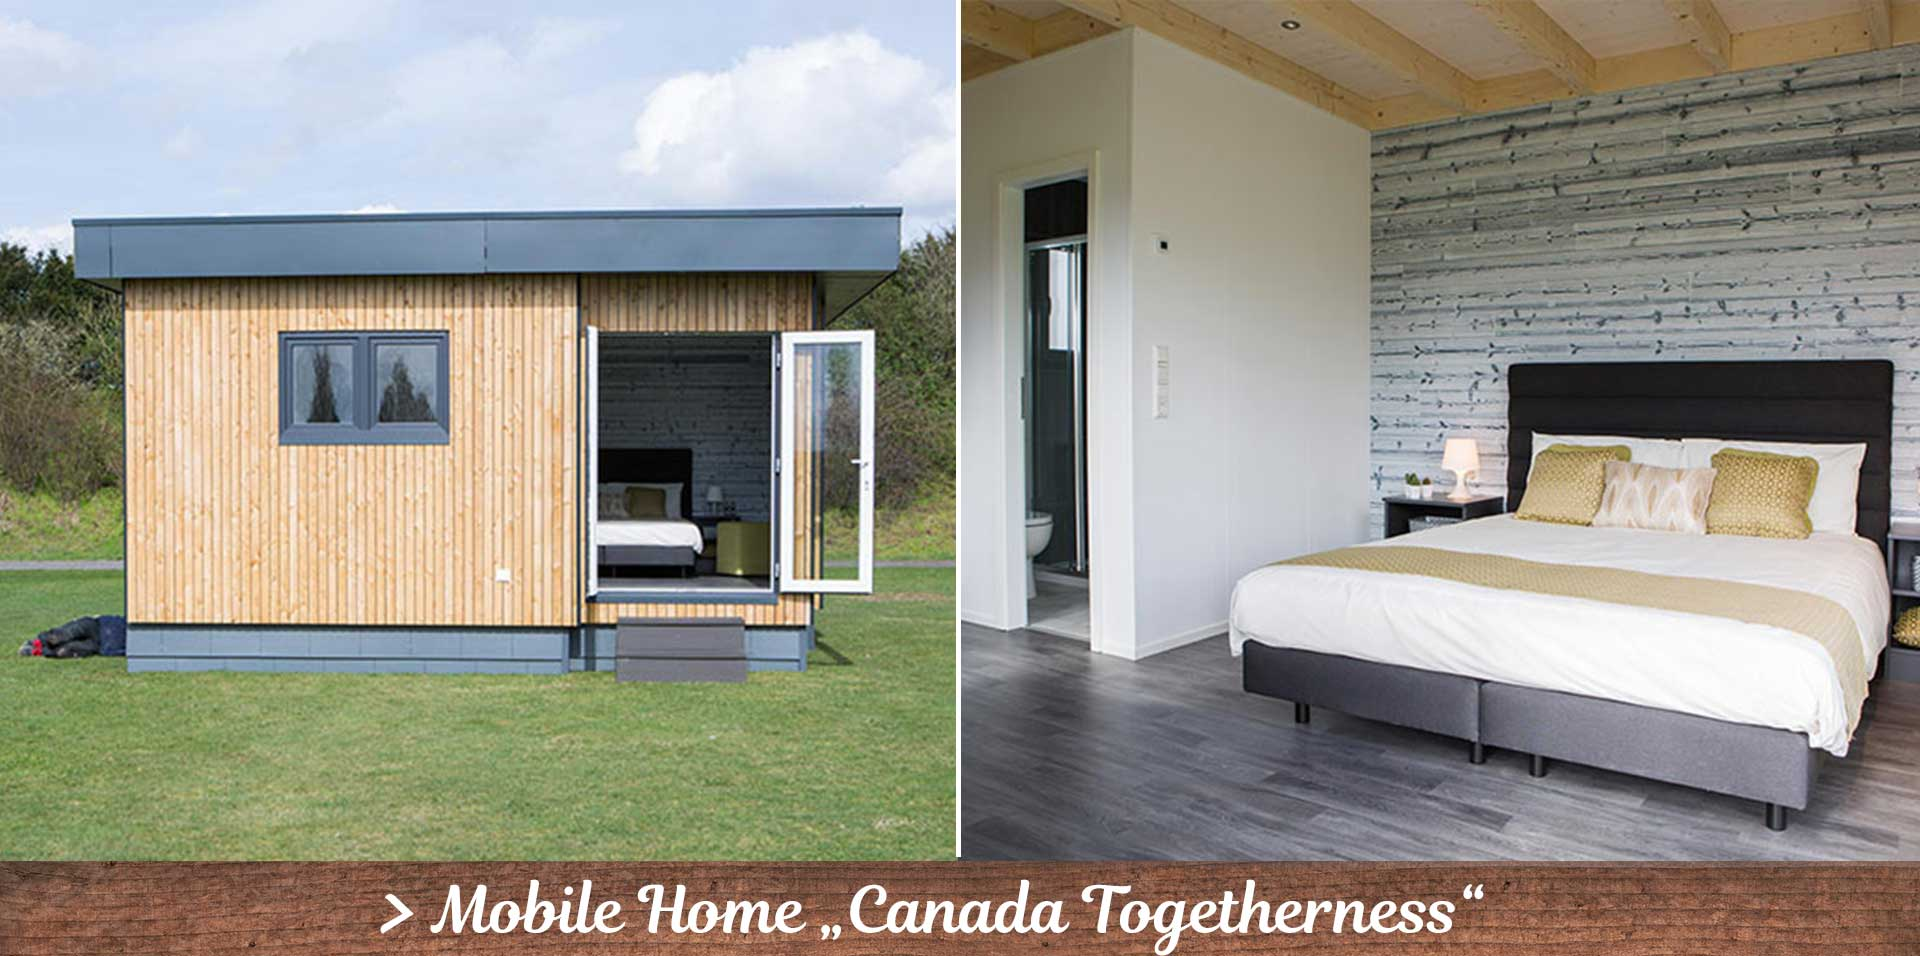 Container Tiny Haus Kaufen Zuhause An Ihrem Lieblingsort Mobiles Tiny House